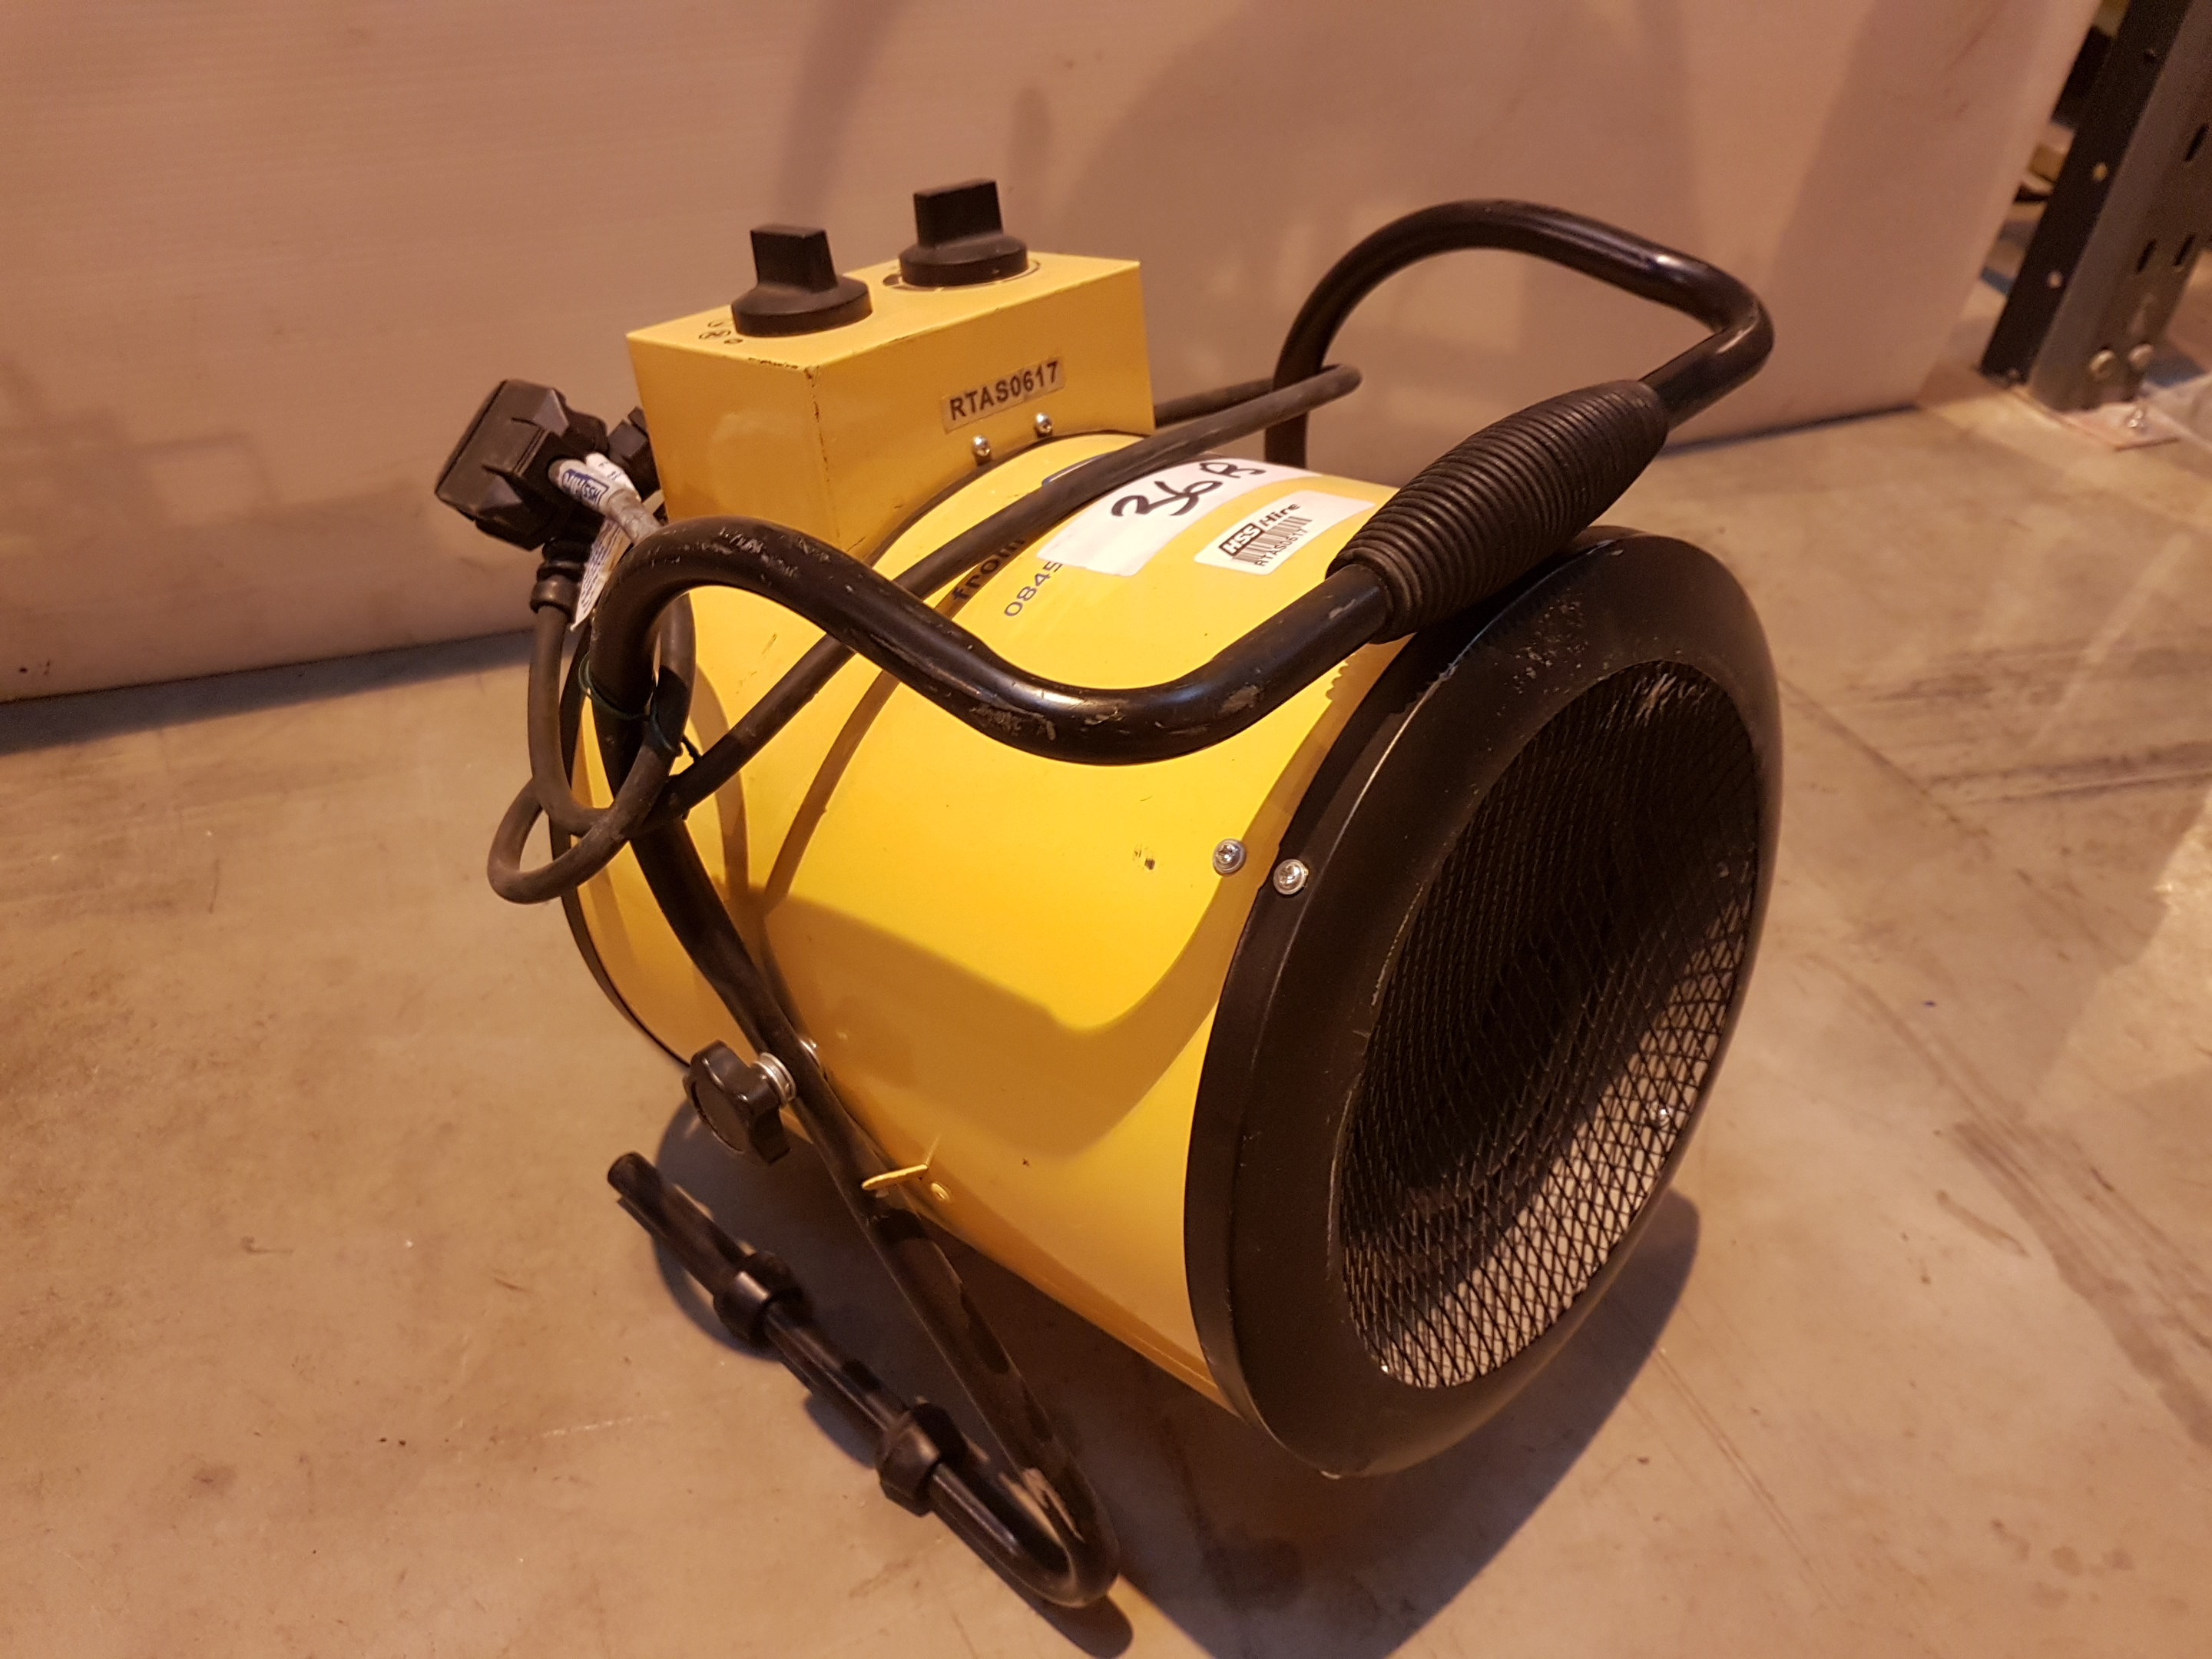 Lot 36 - 240v Retail Heater rtas0617, working